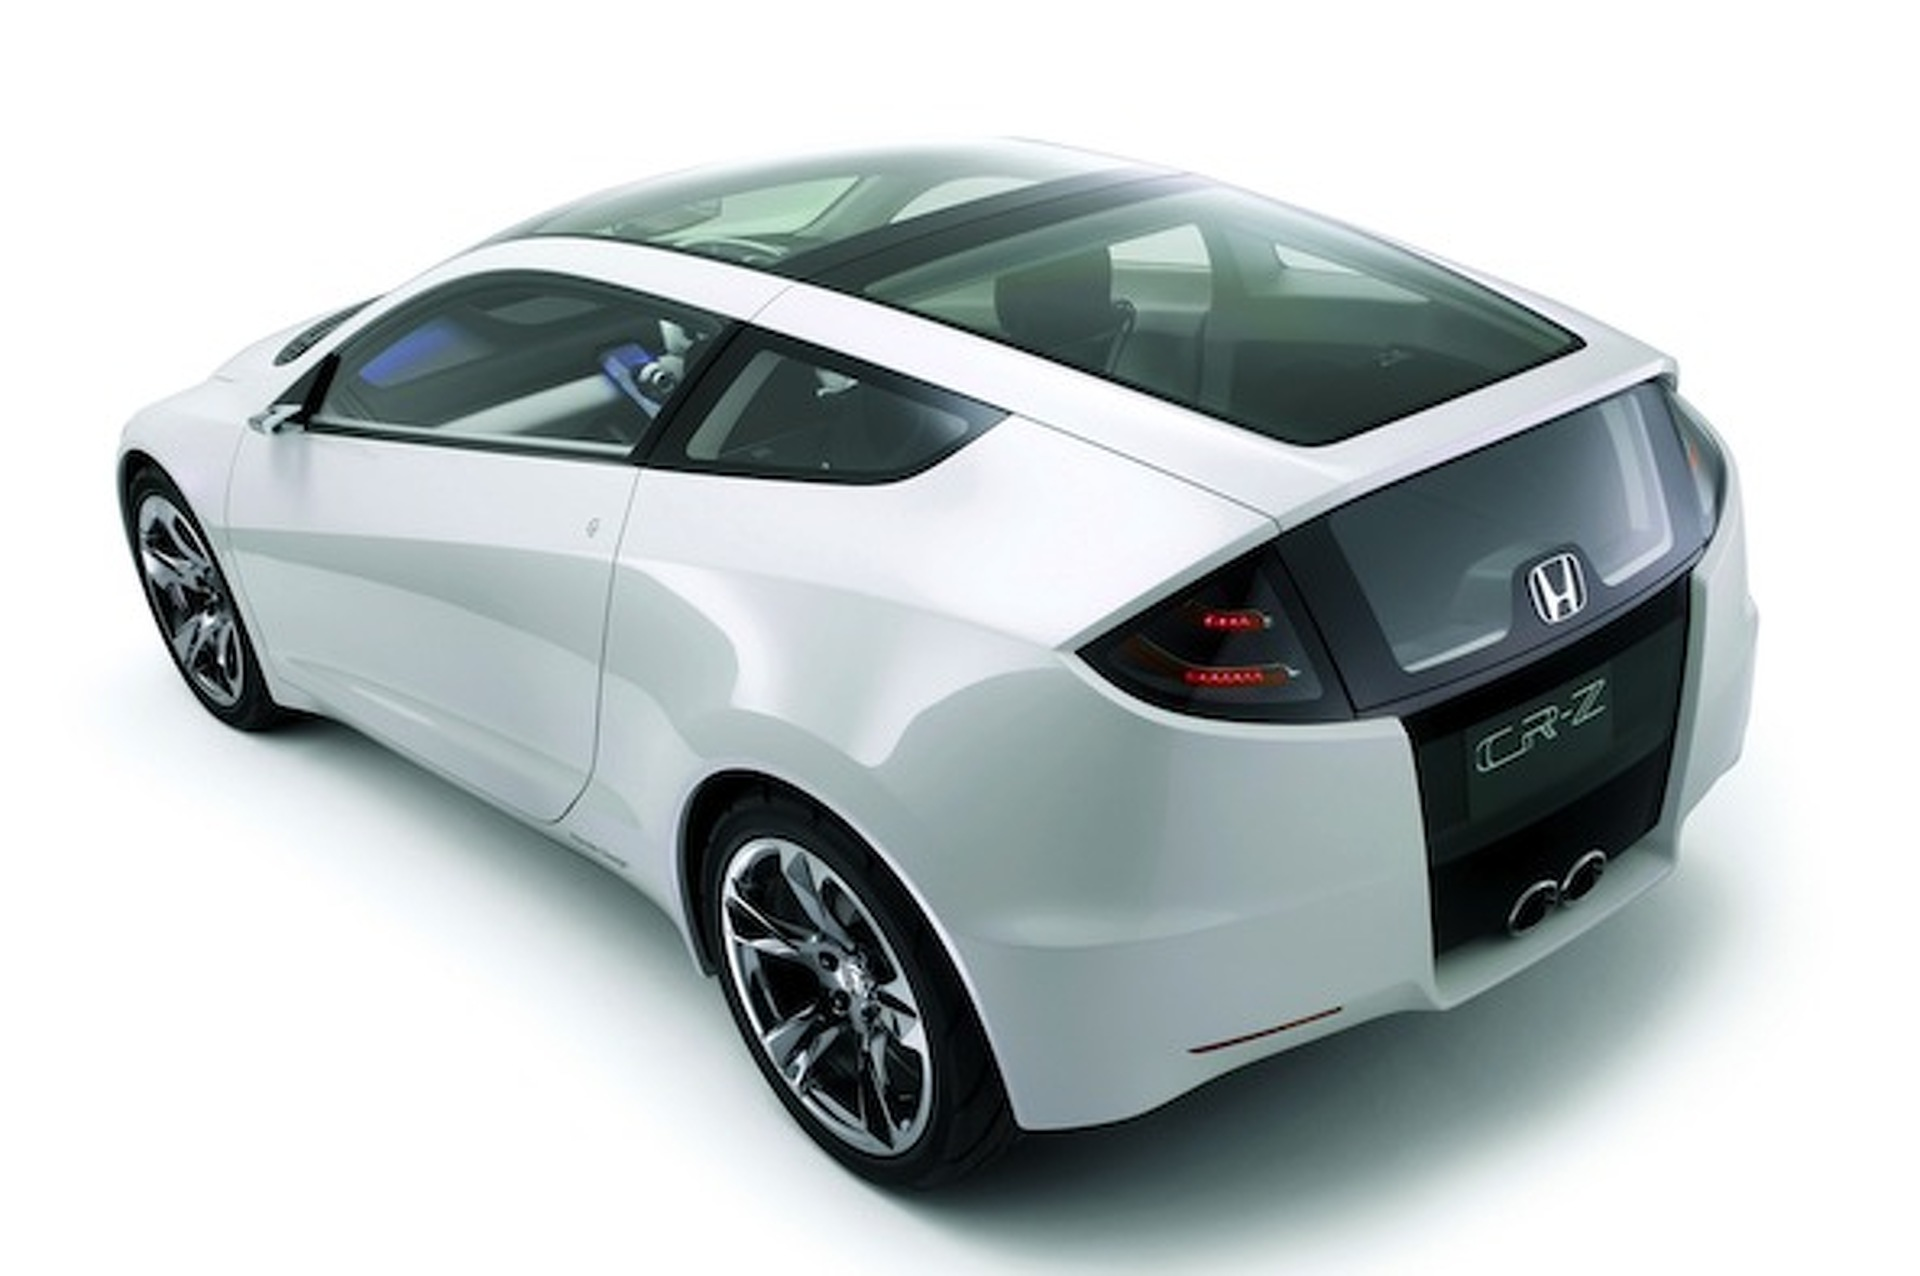 Next-Gen Honda CR-Z to be More Powerful, Could Share Type R Architecture